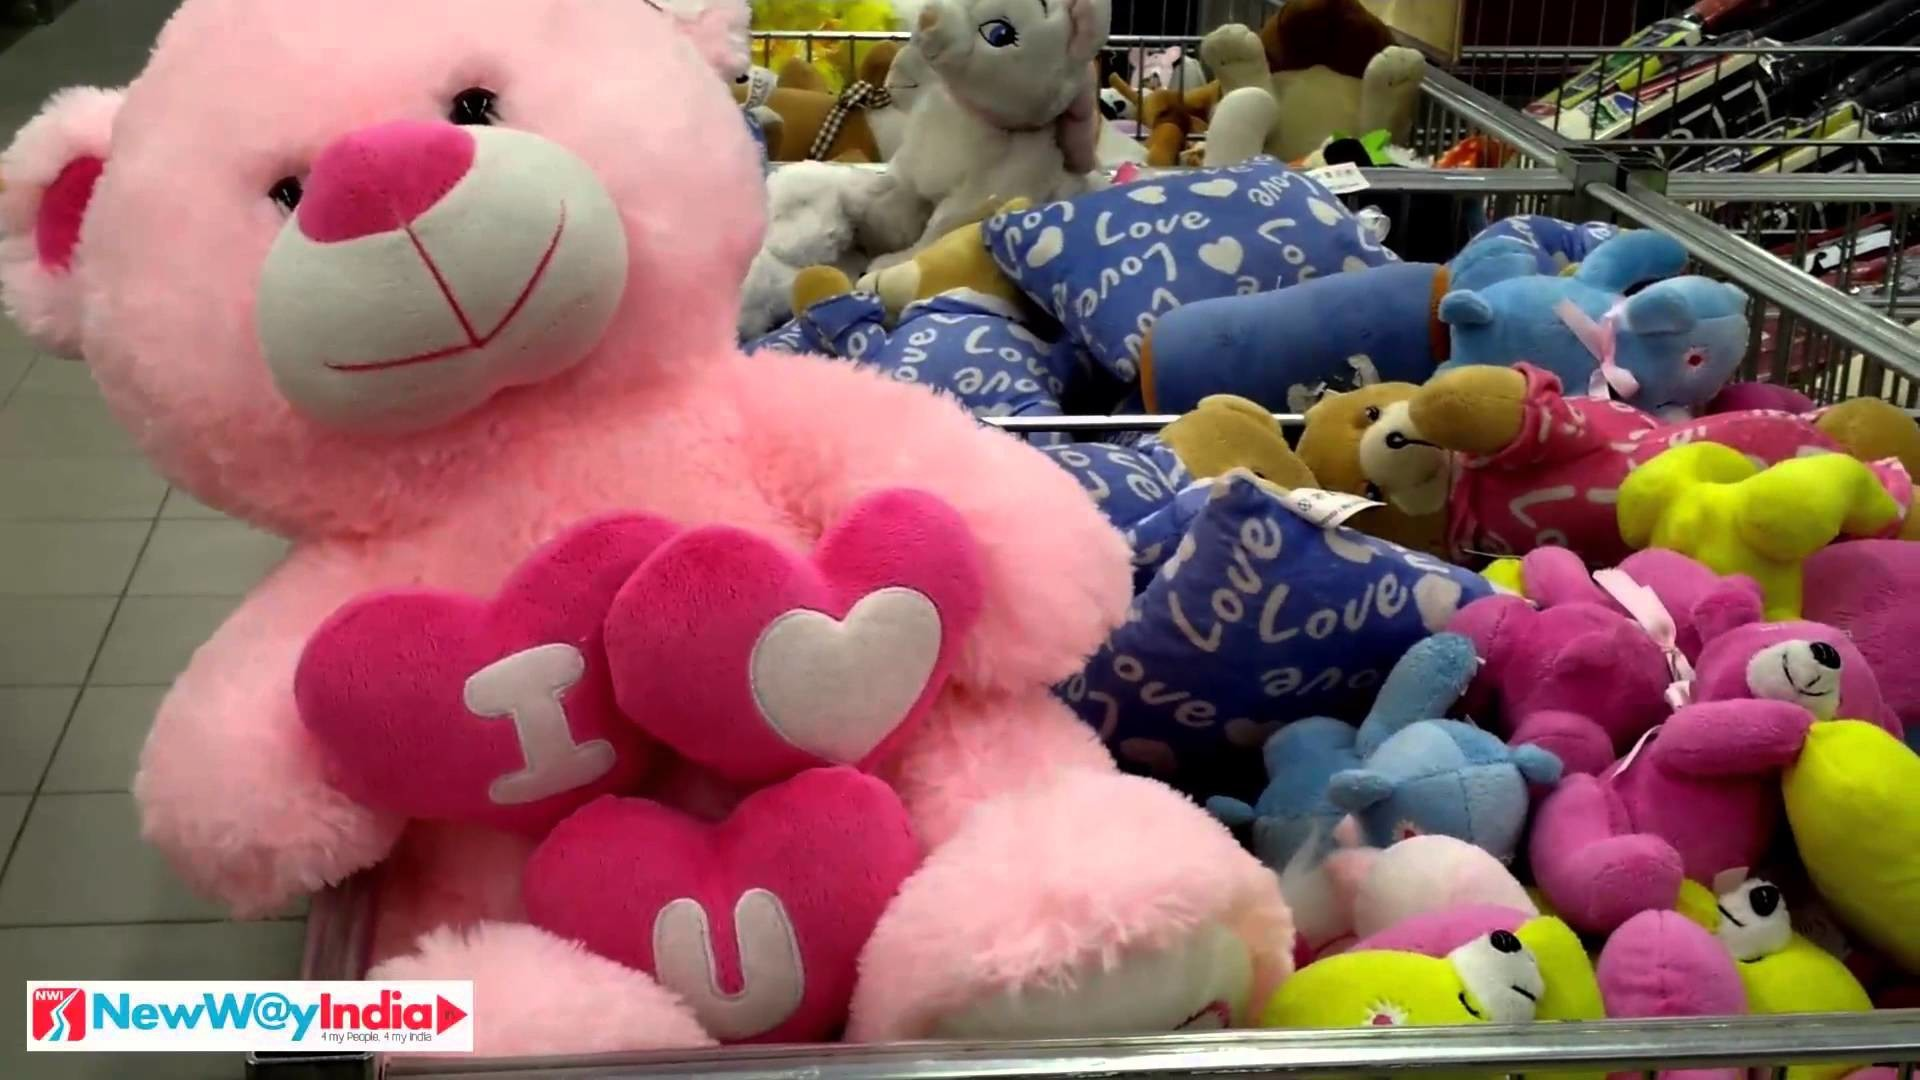 Love Teddy Bear Wallpapers (48+ images) - photo#43